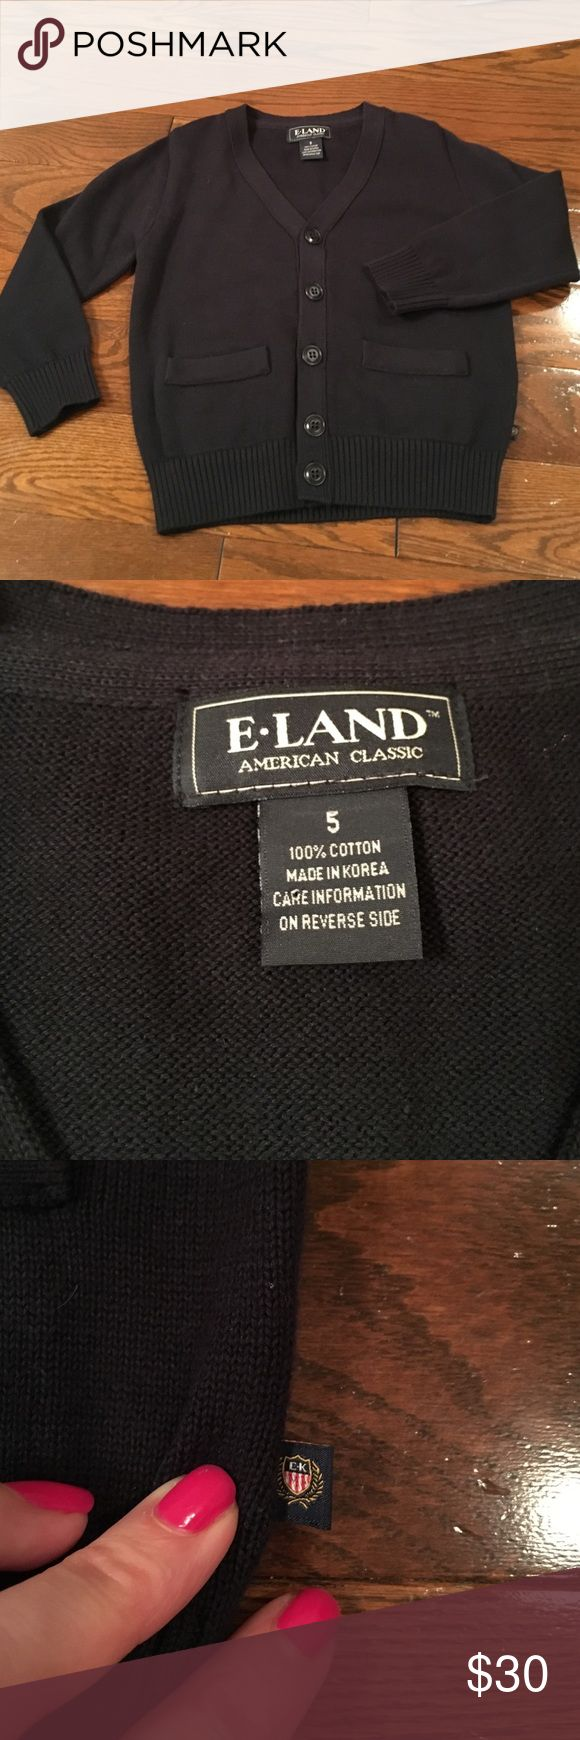 E-Land cardigan in black, boys 5 NWOT Adorable cardigan with two pockets NWOT E Land Shirts & Tops Sweaters